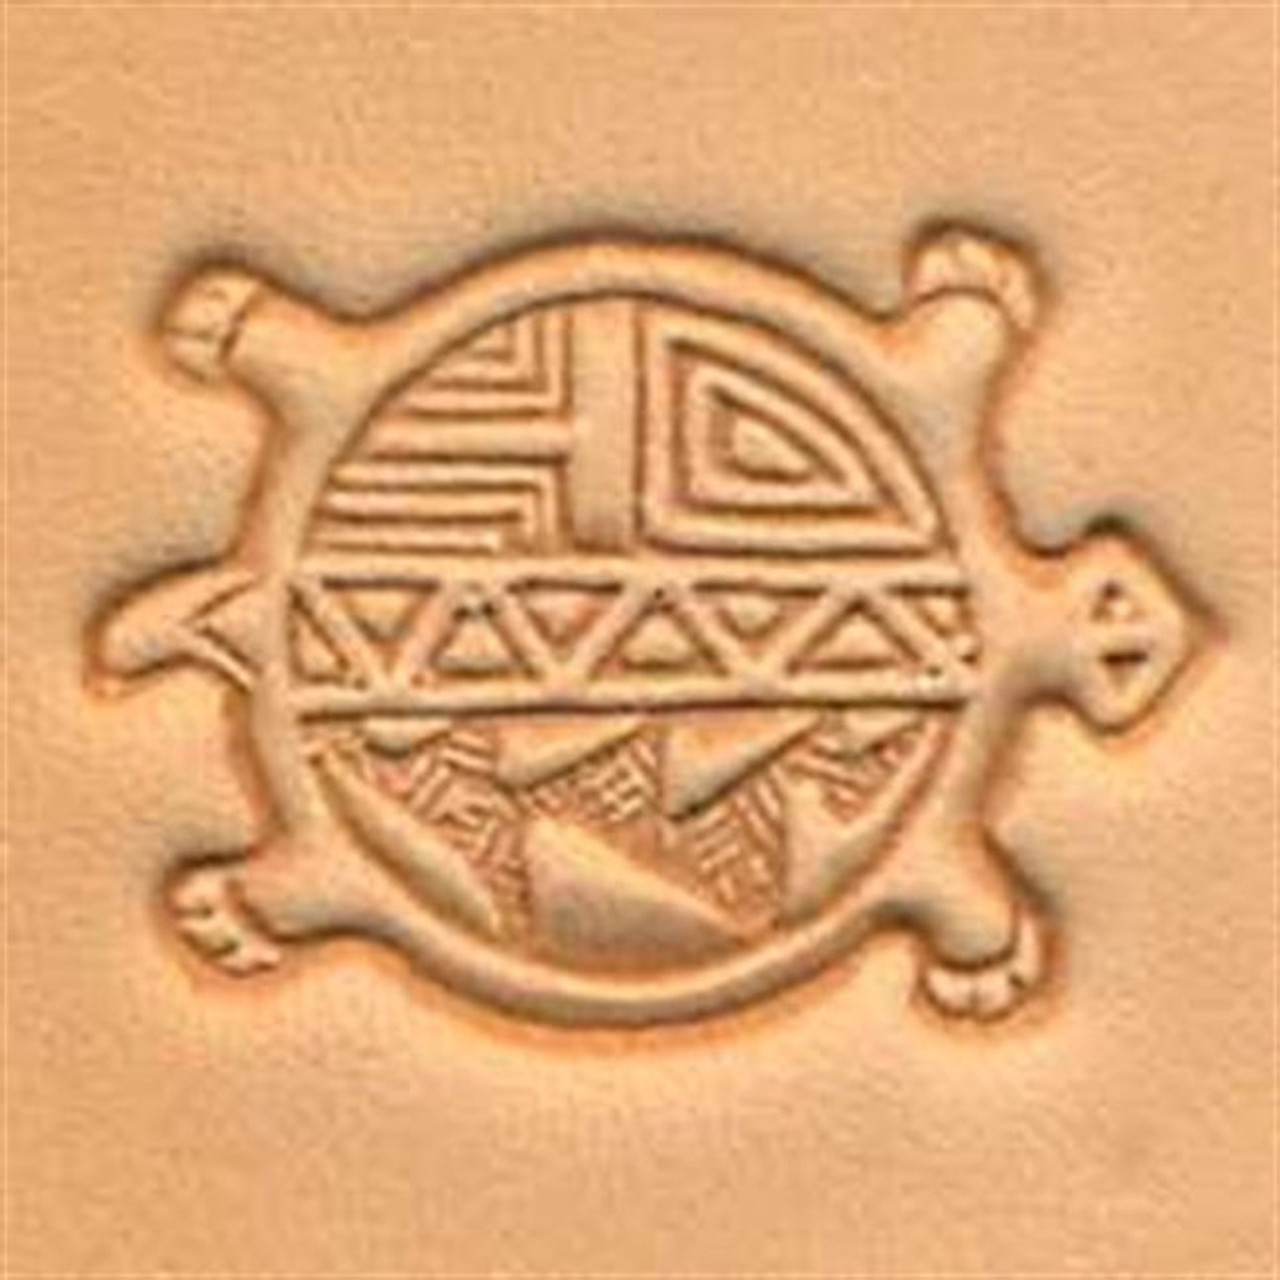 Tandy Leather 3D Round Celtic Stamp 8537-00